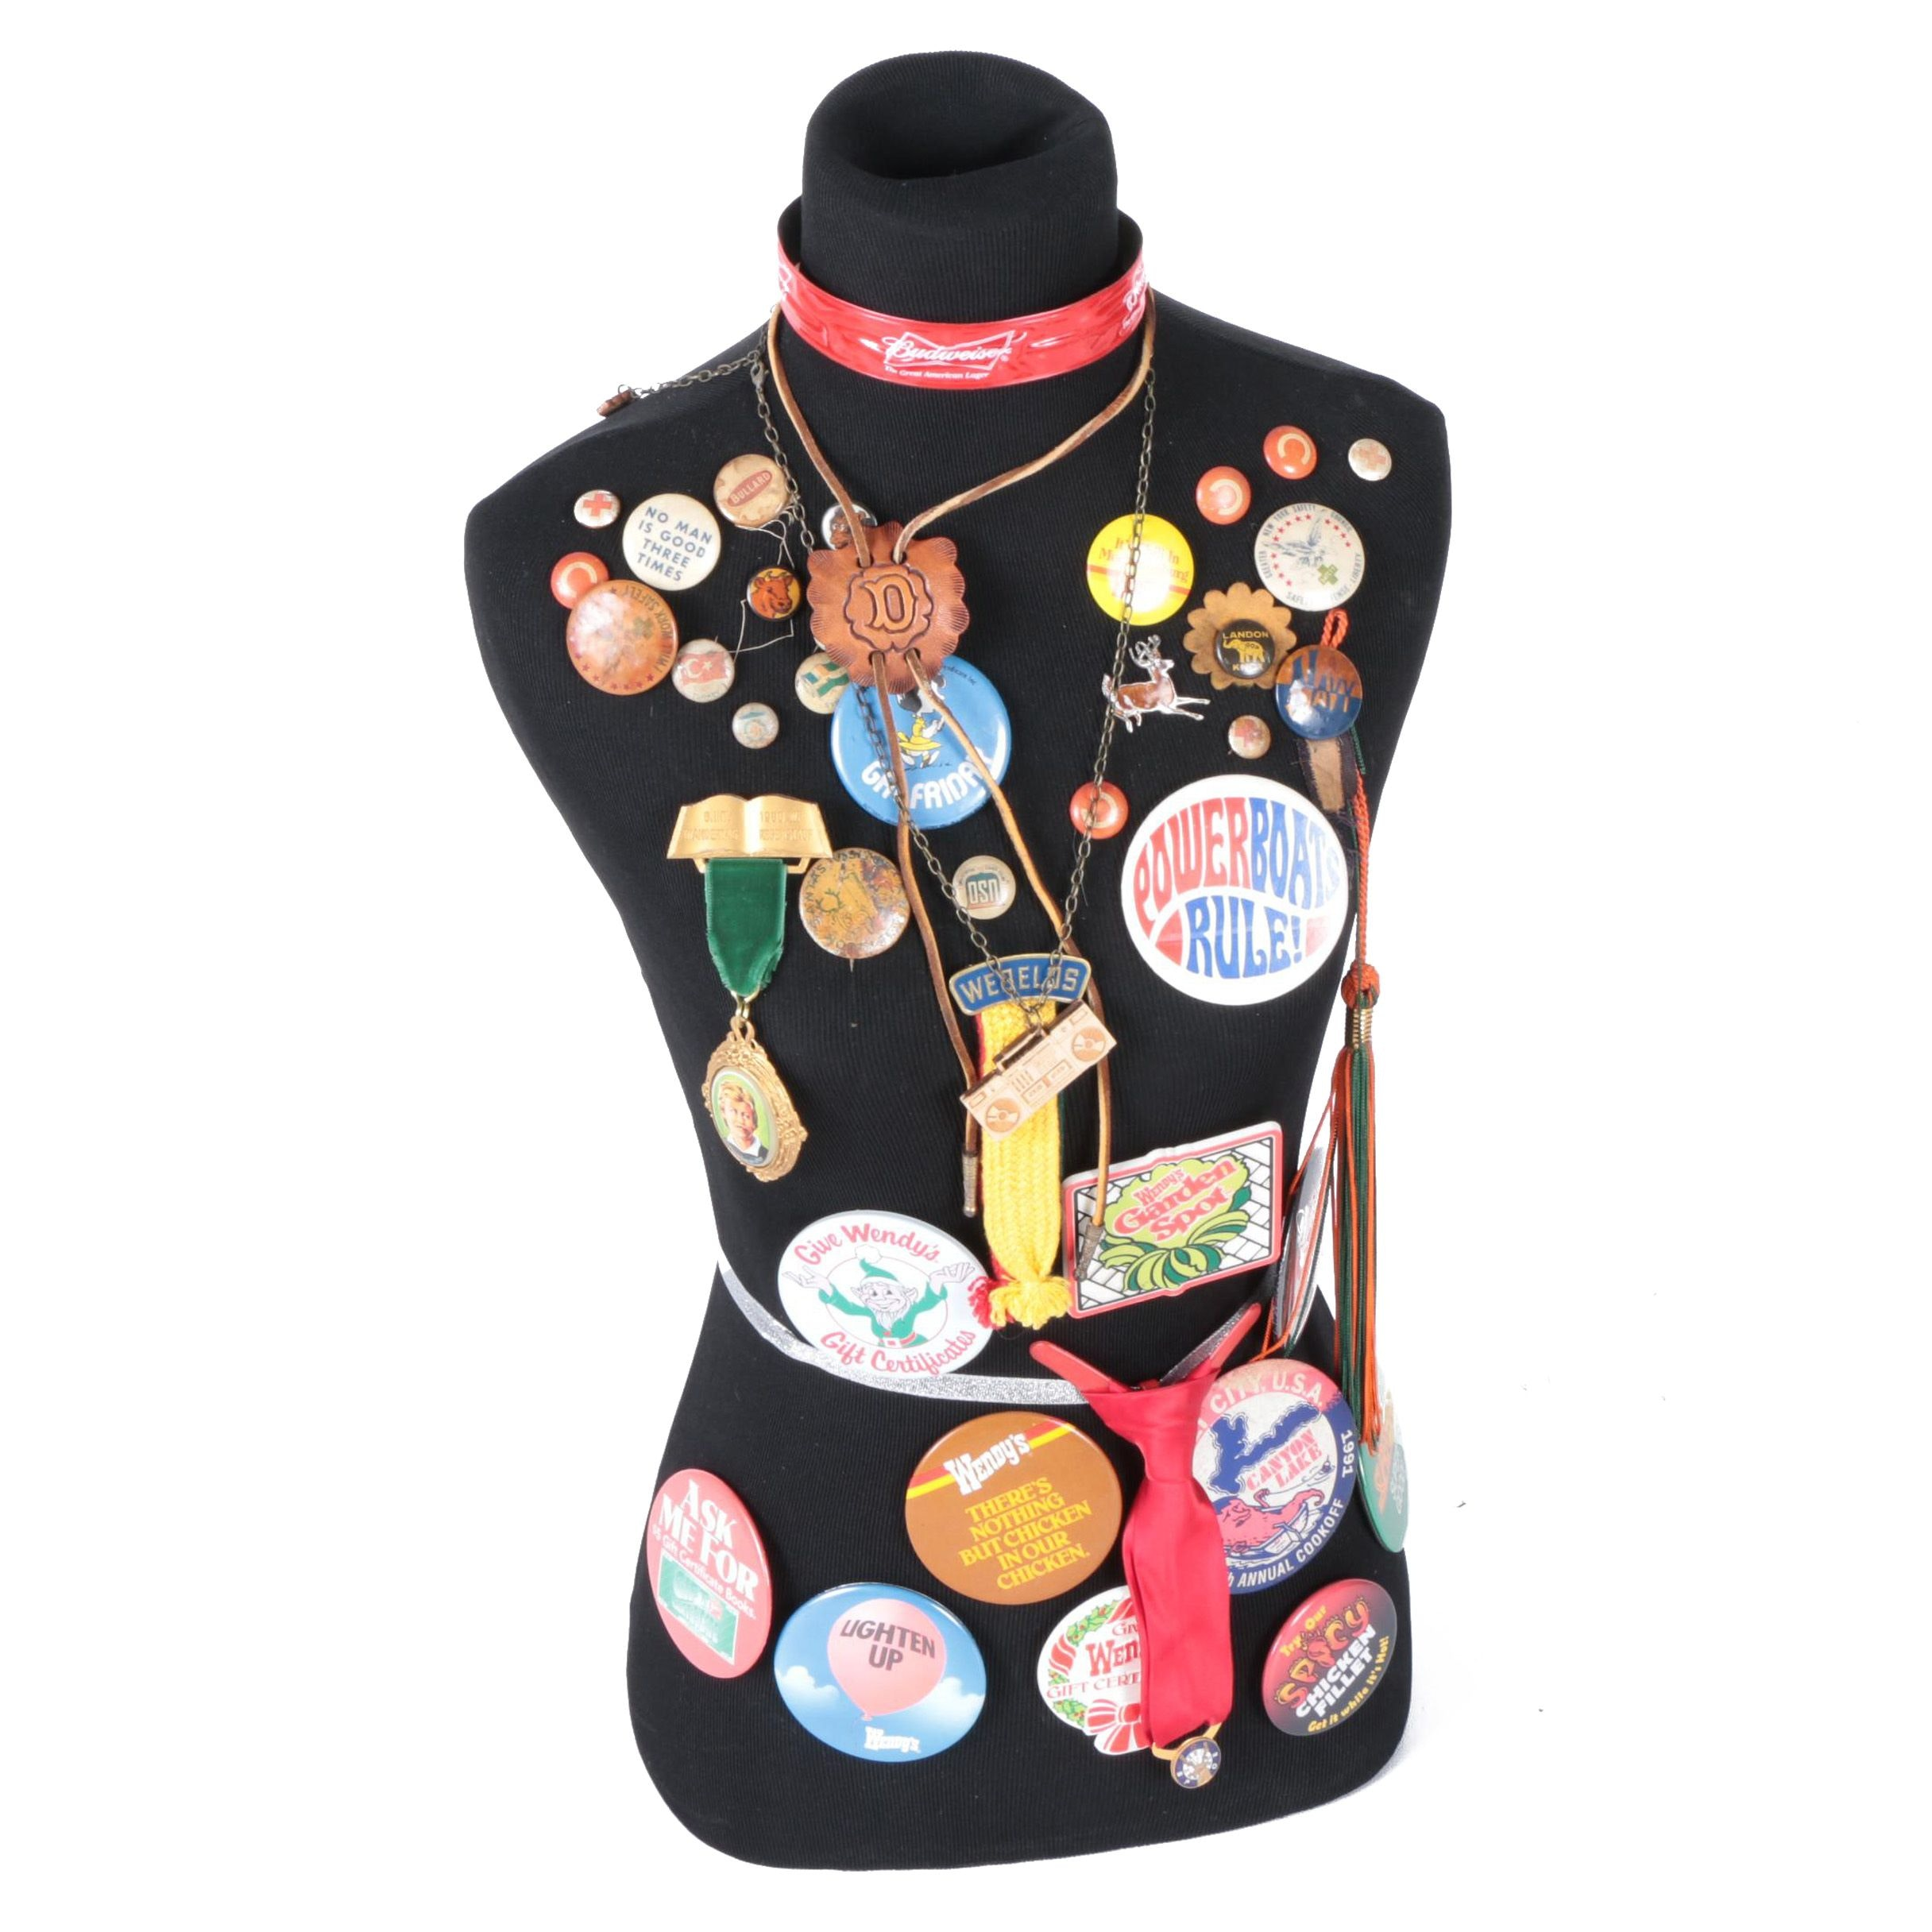 Torso Mannequin with Vintage Pins and Badges